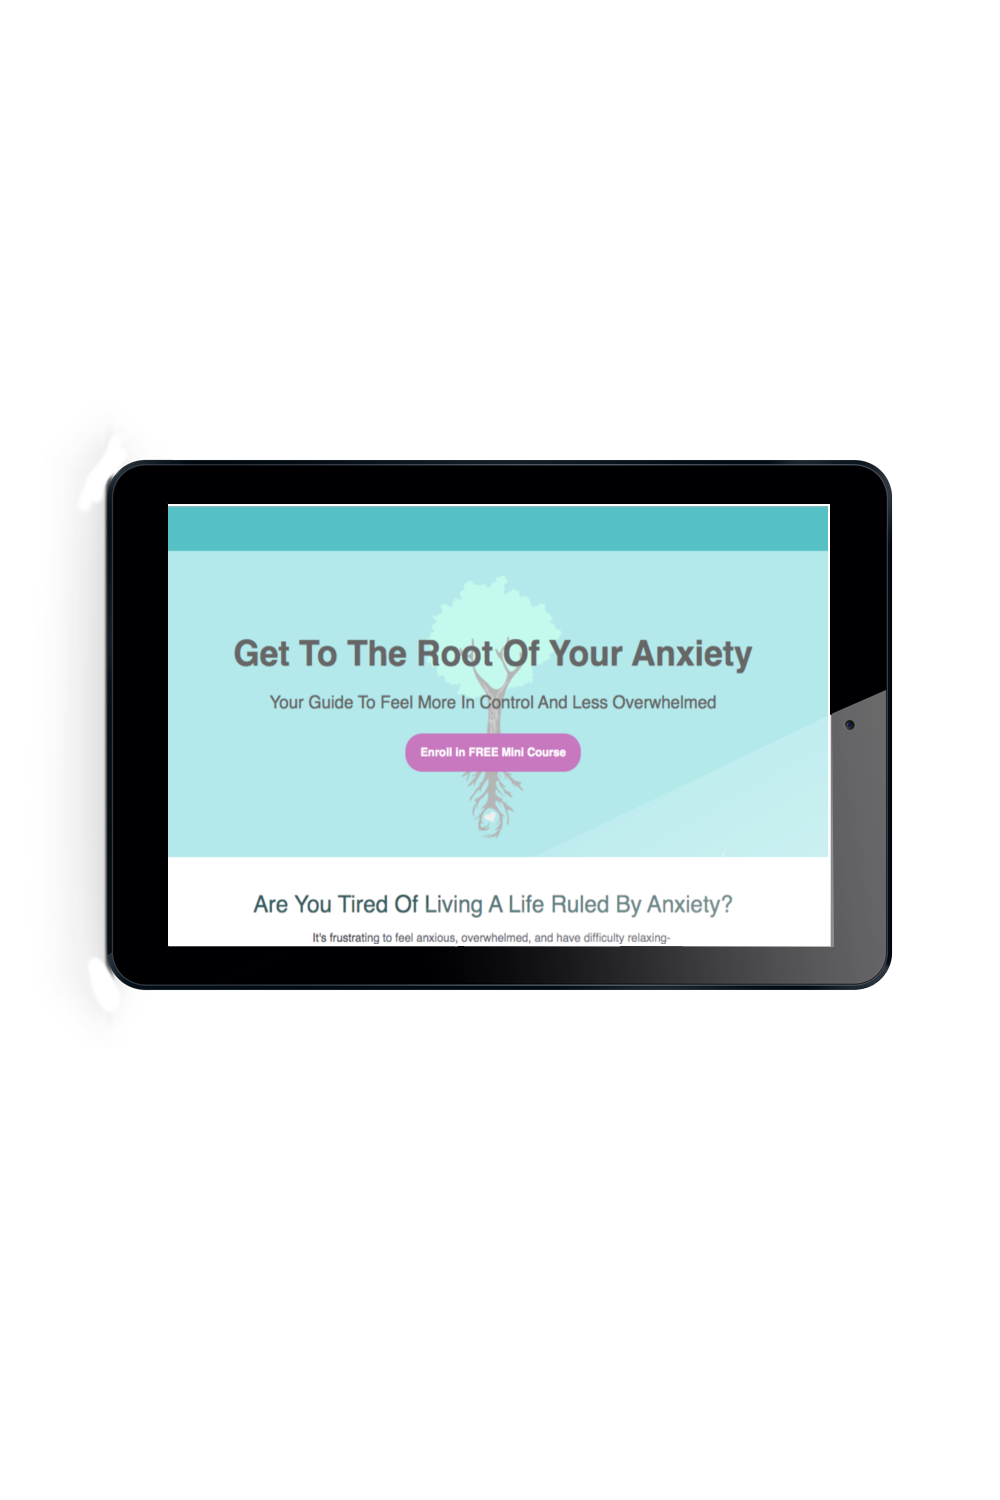 Get To The Root Of Your Anxiety Free Mini Course